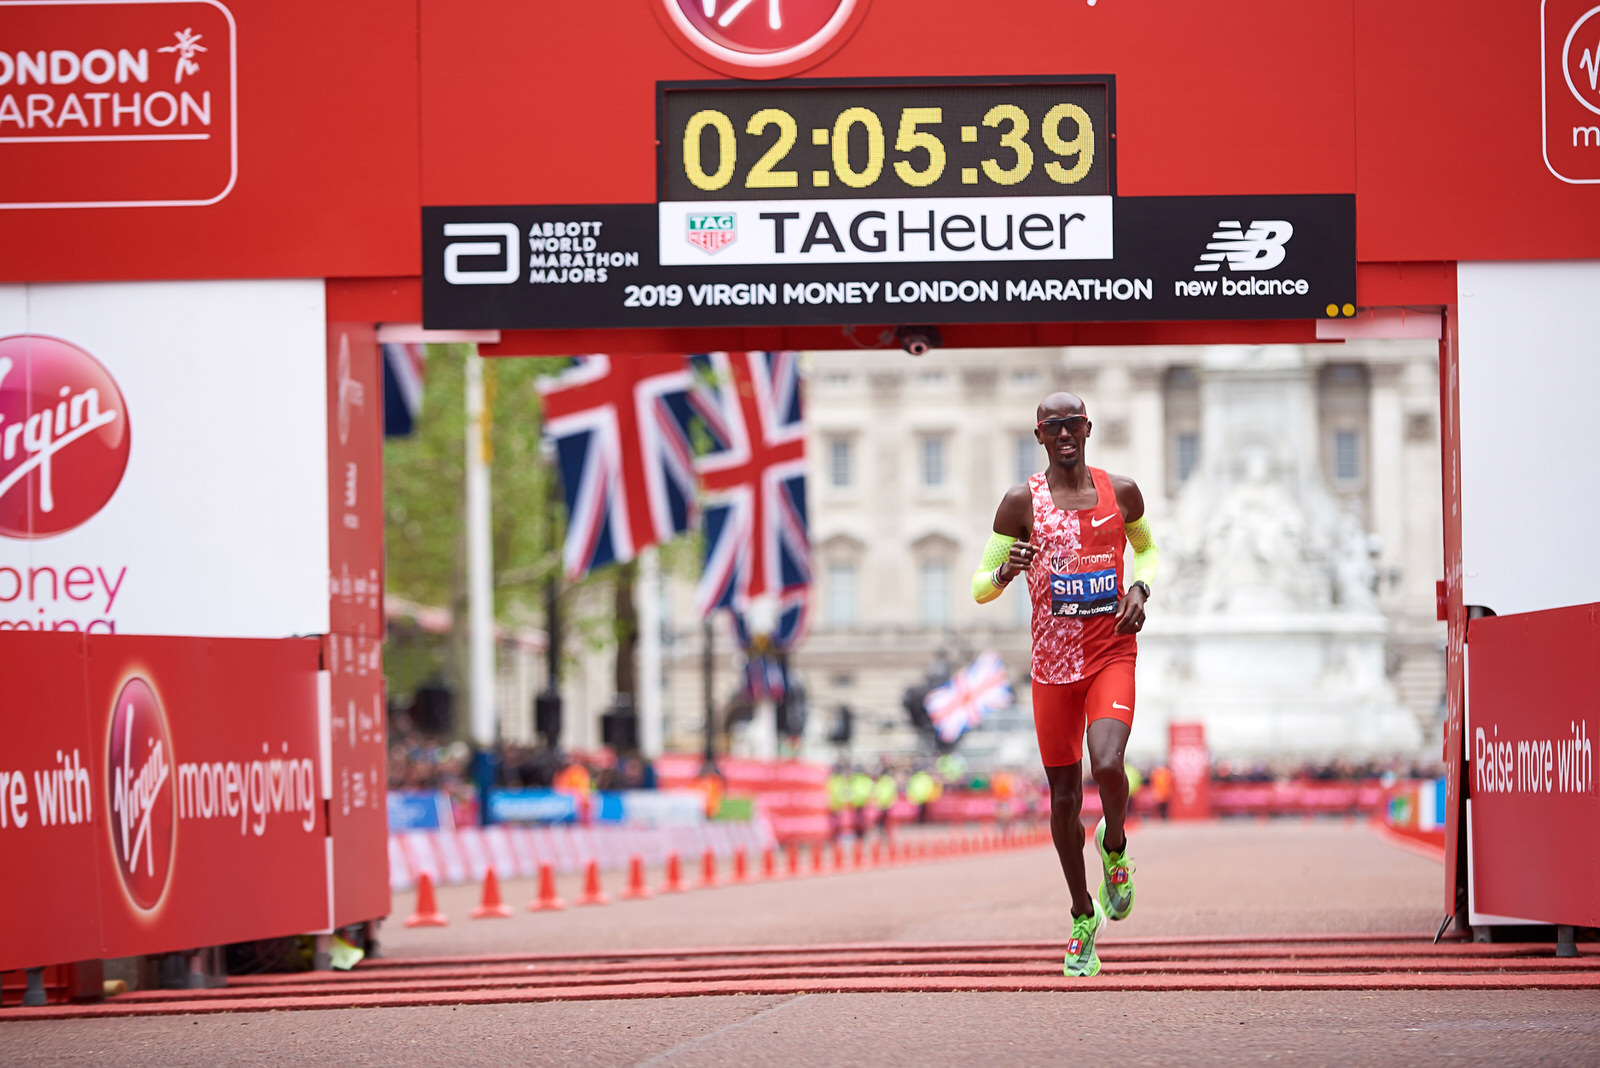 Mo Farrah comes in fifth in  the elite men's race at the London Marathon on April 28th, 2019.